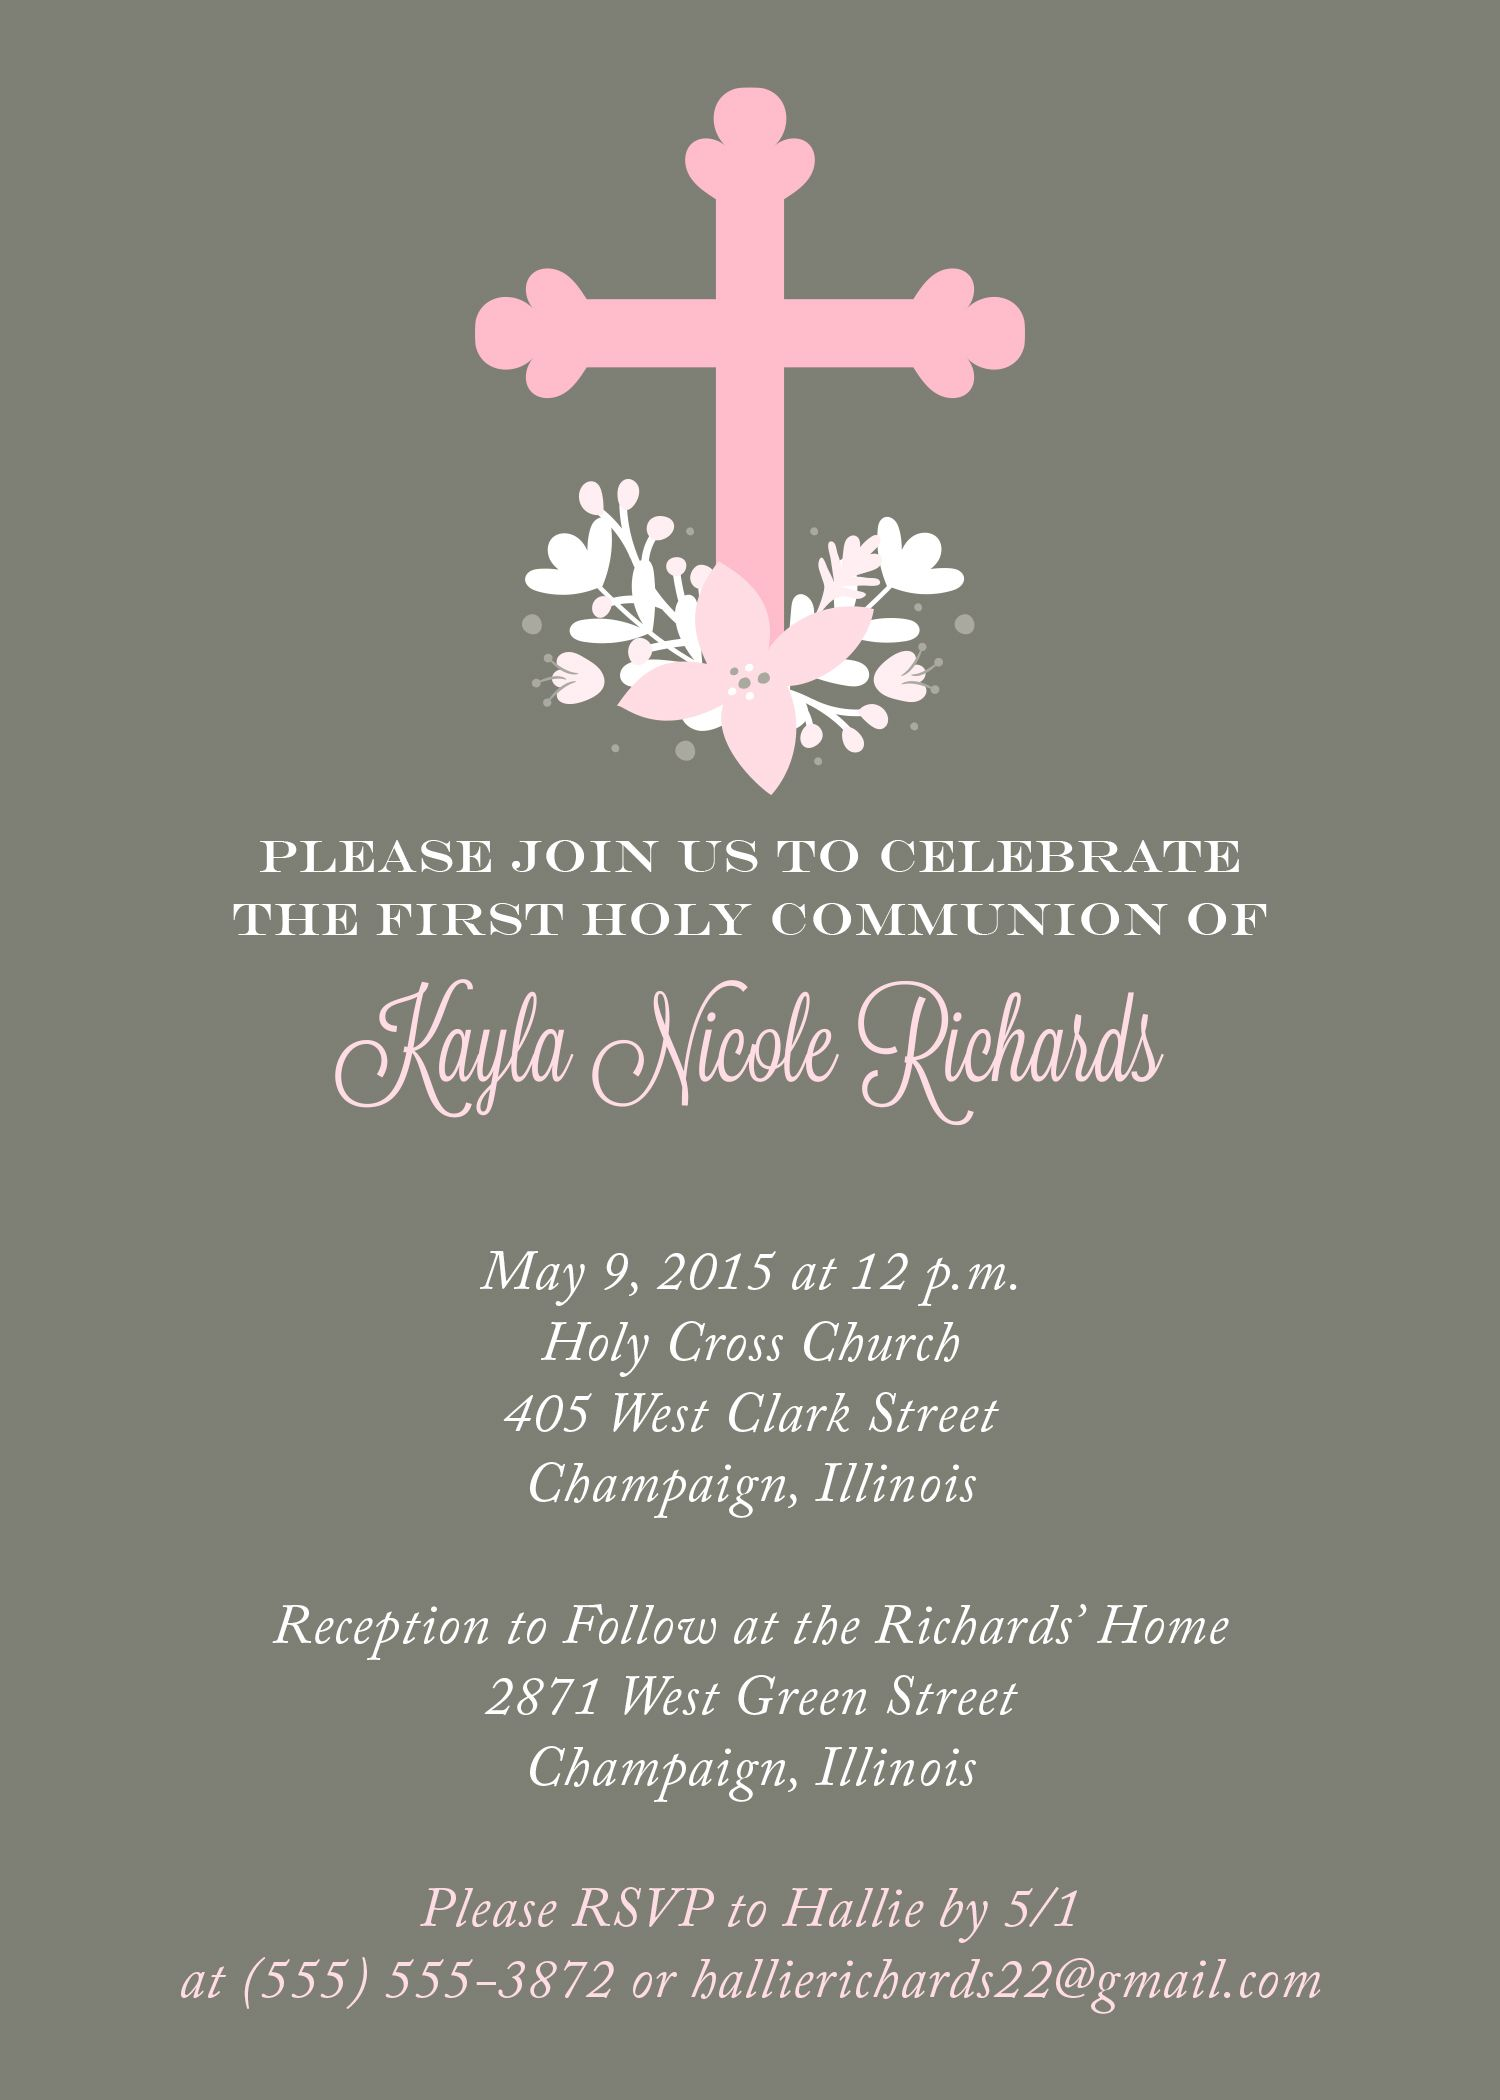 First communion invitation from httpreplybyoccasions